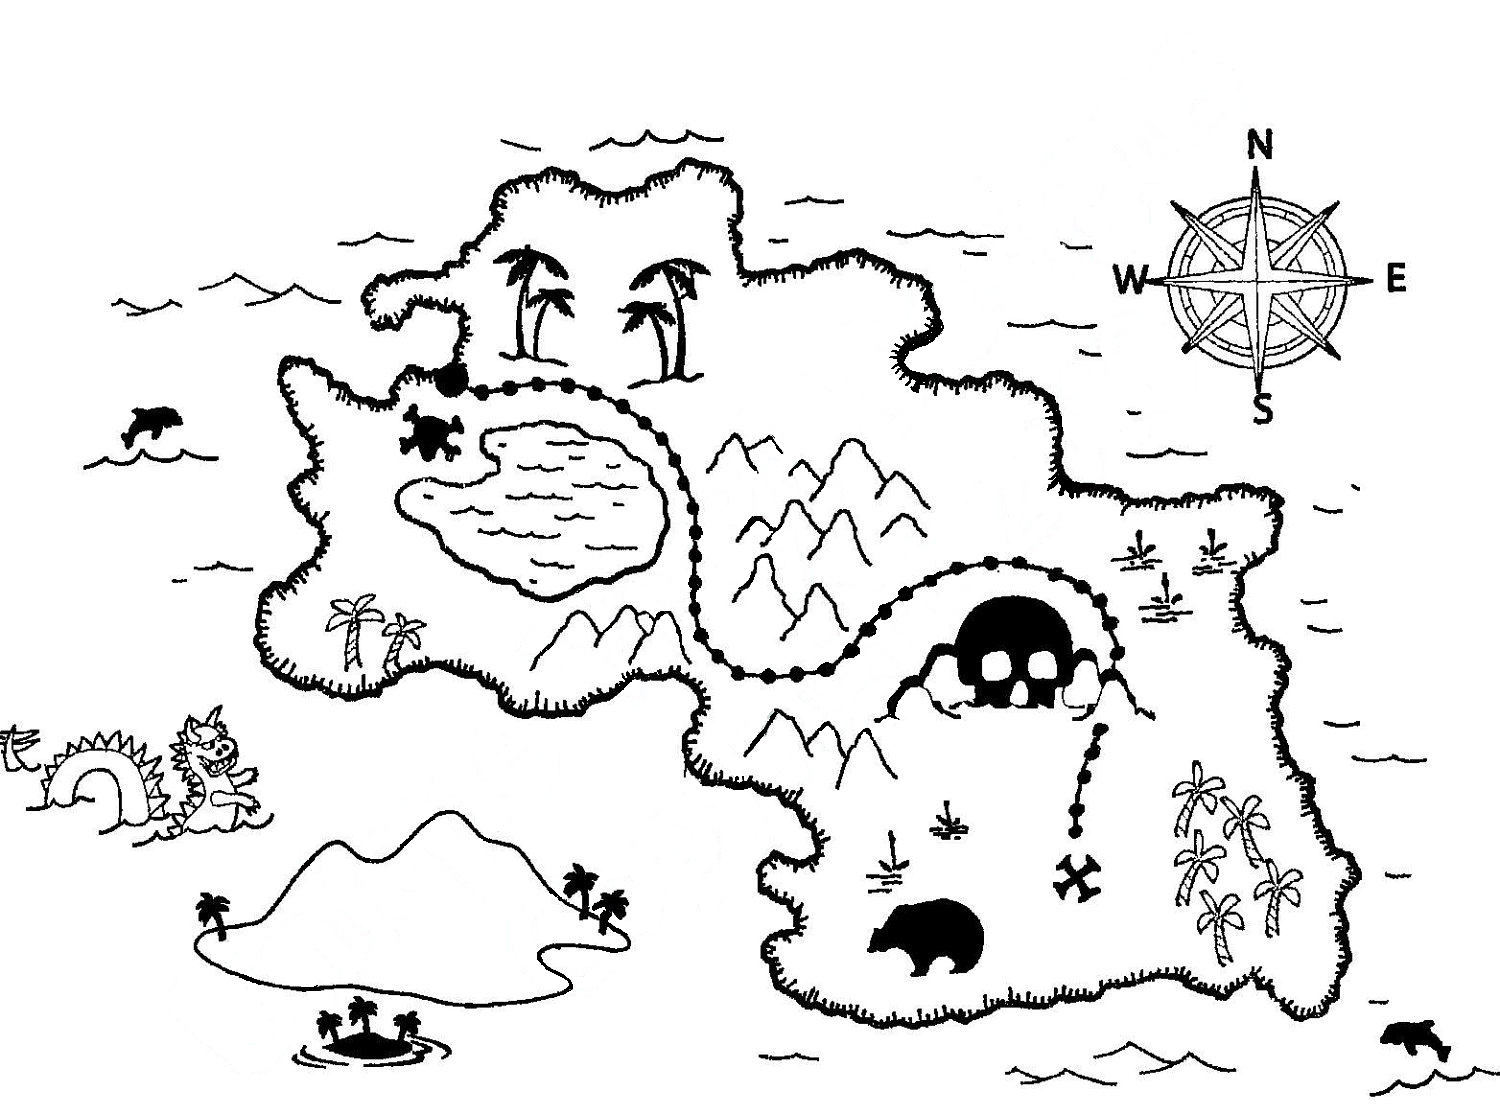 Dltk Coloring Pages World Map Az Coloring Pages Dtlk Coloring Pages